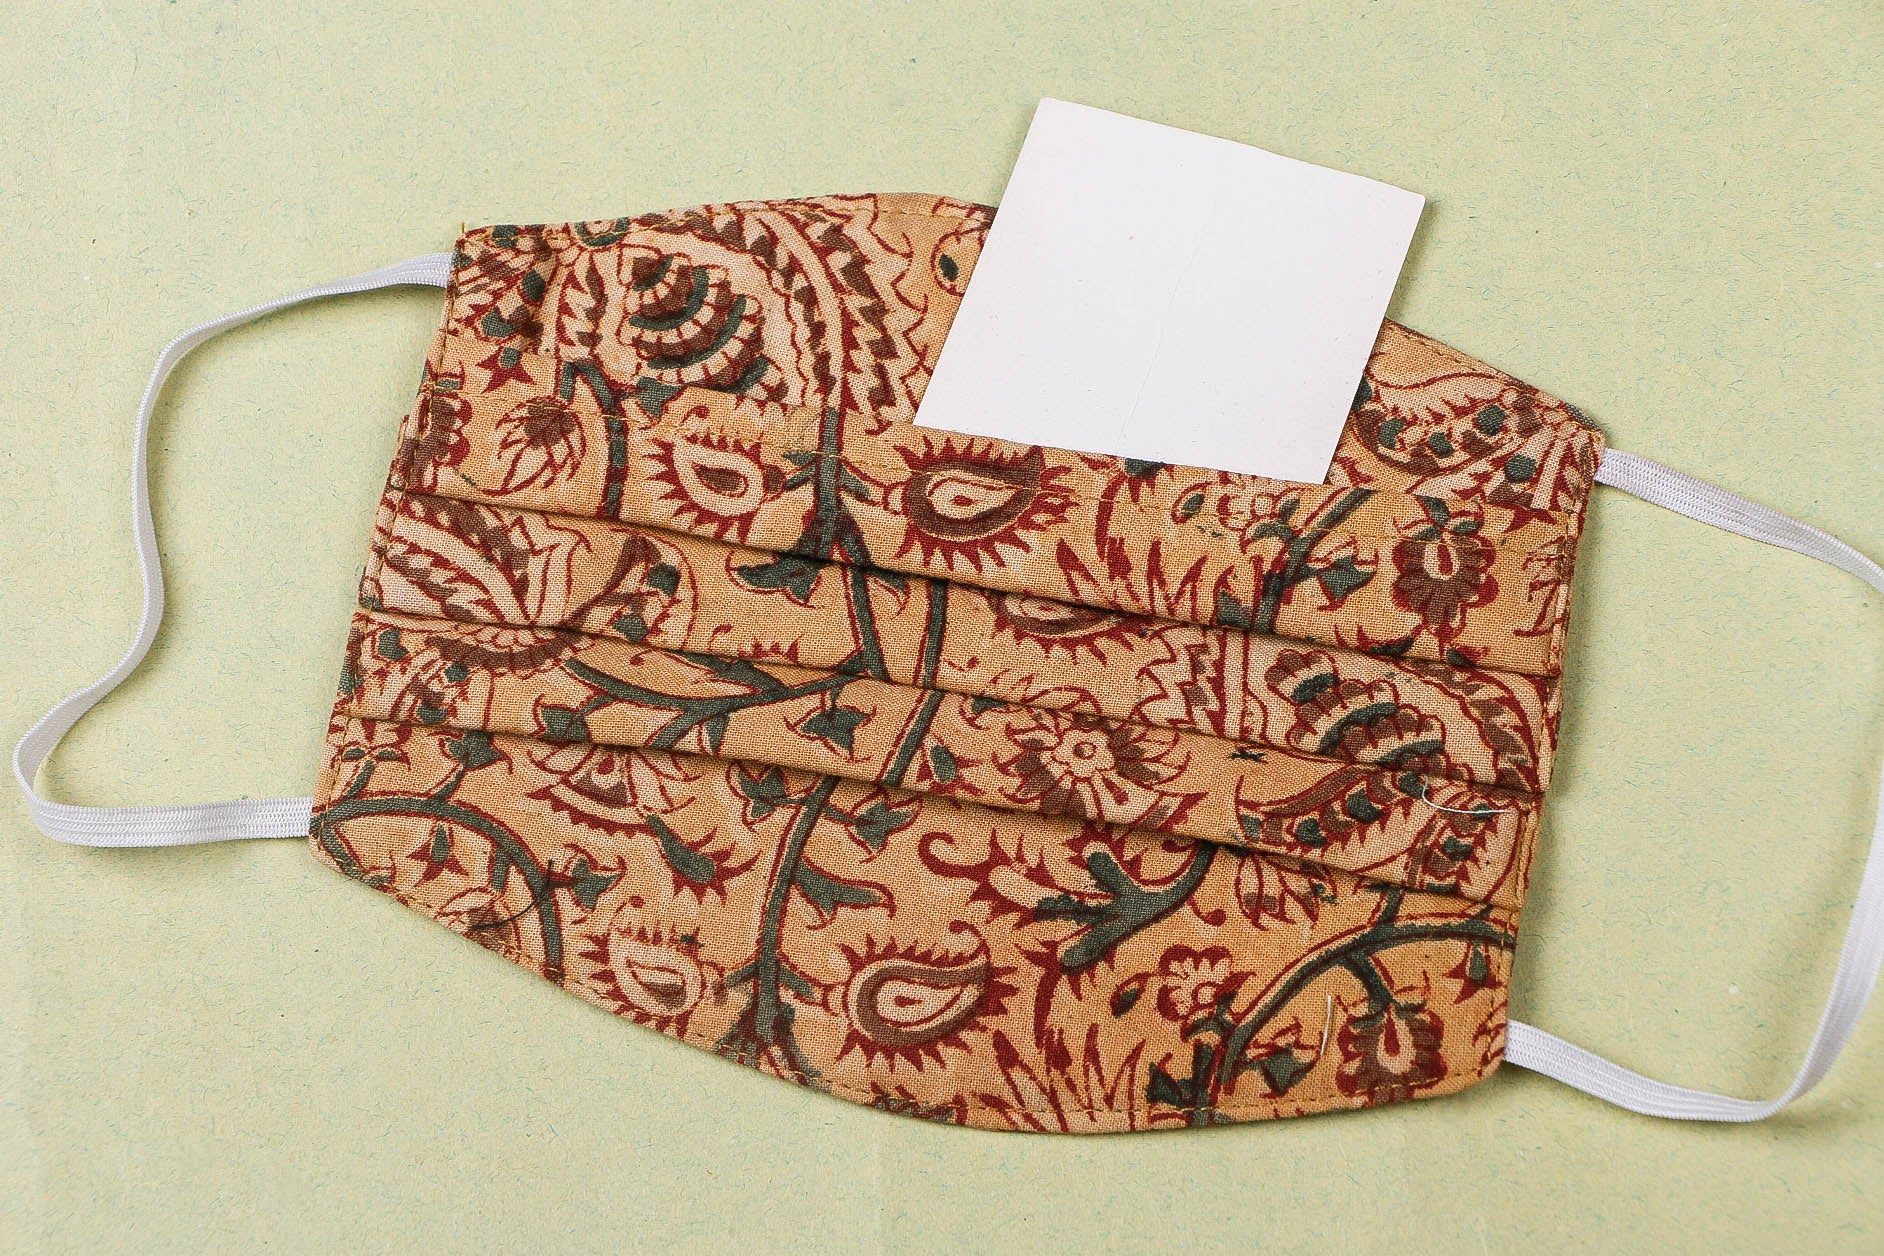 3 Layer Kalamkari Natural Dyed Cotton Fabric Pleated Face Cover with Filter Pocket